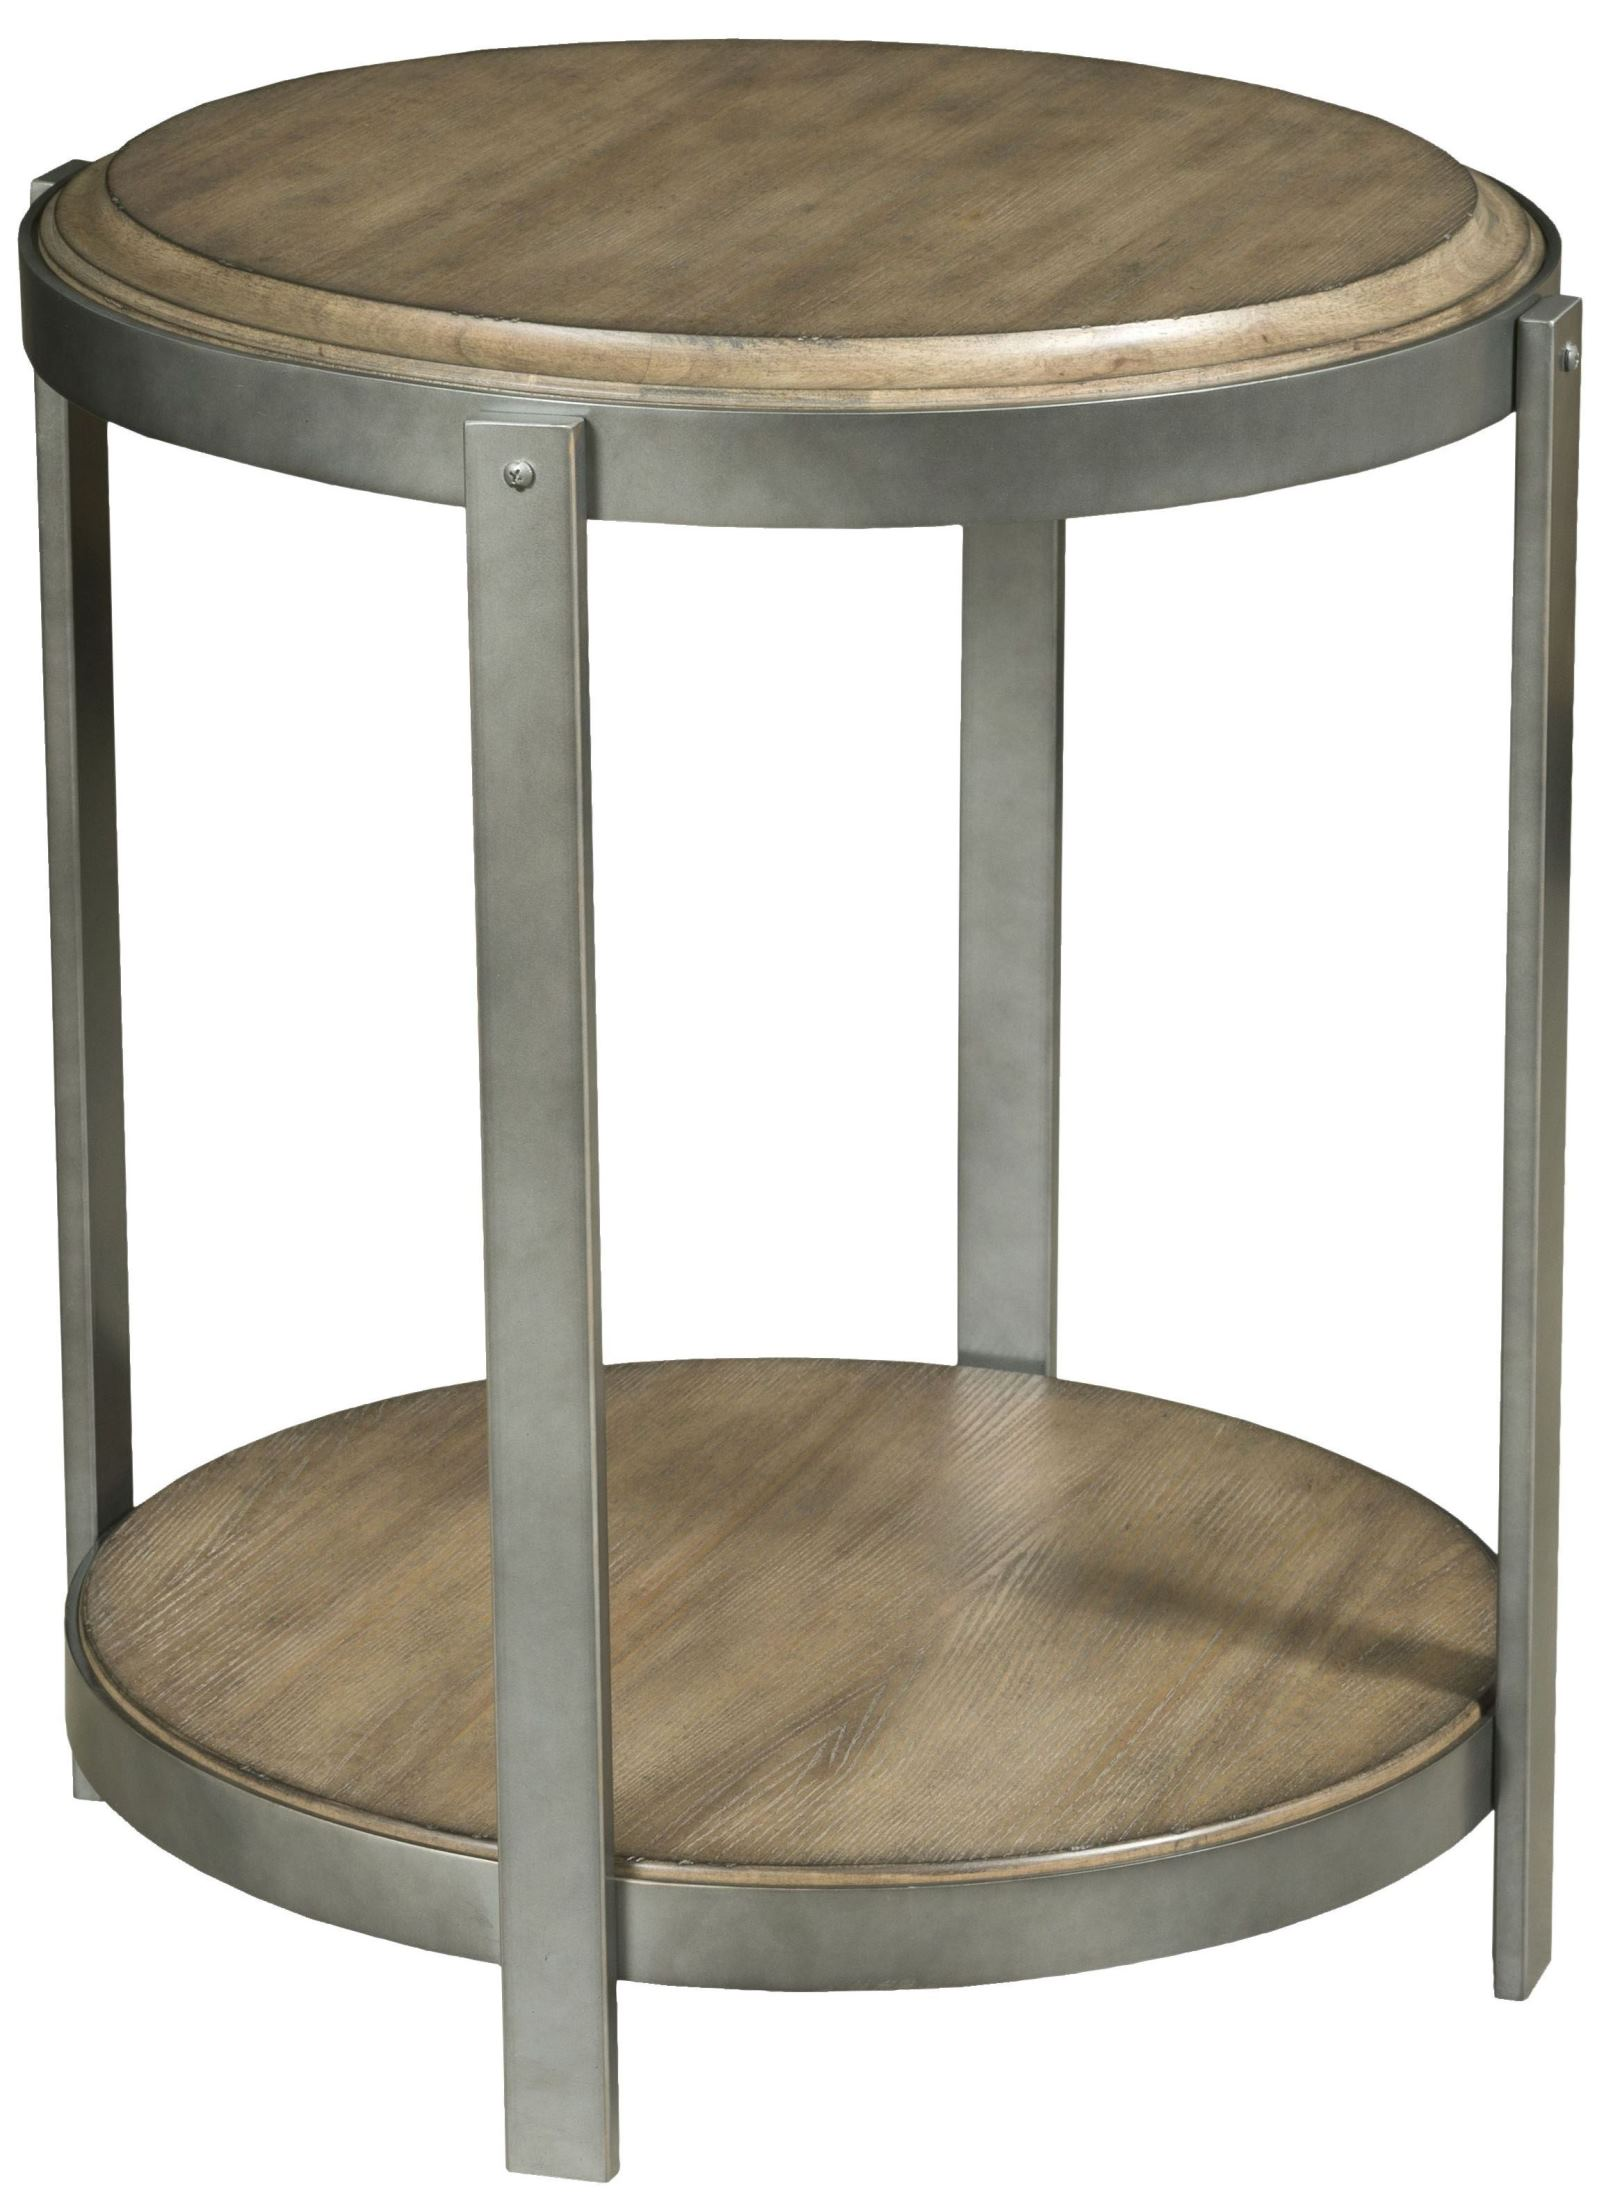 american drew evoke barley round accent table collection silo christmas placemats and napkins wood glass end tables extra tall lamps heaters console metal cube side ikea fabric